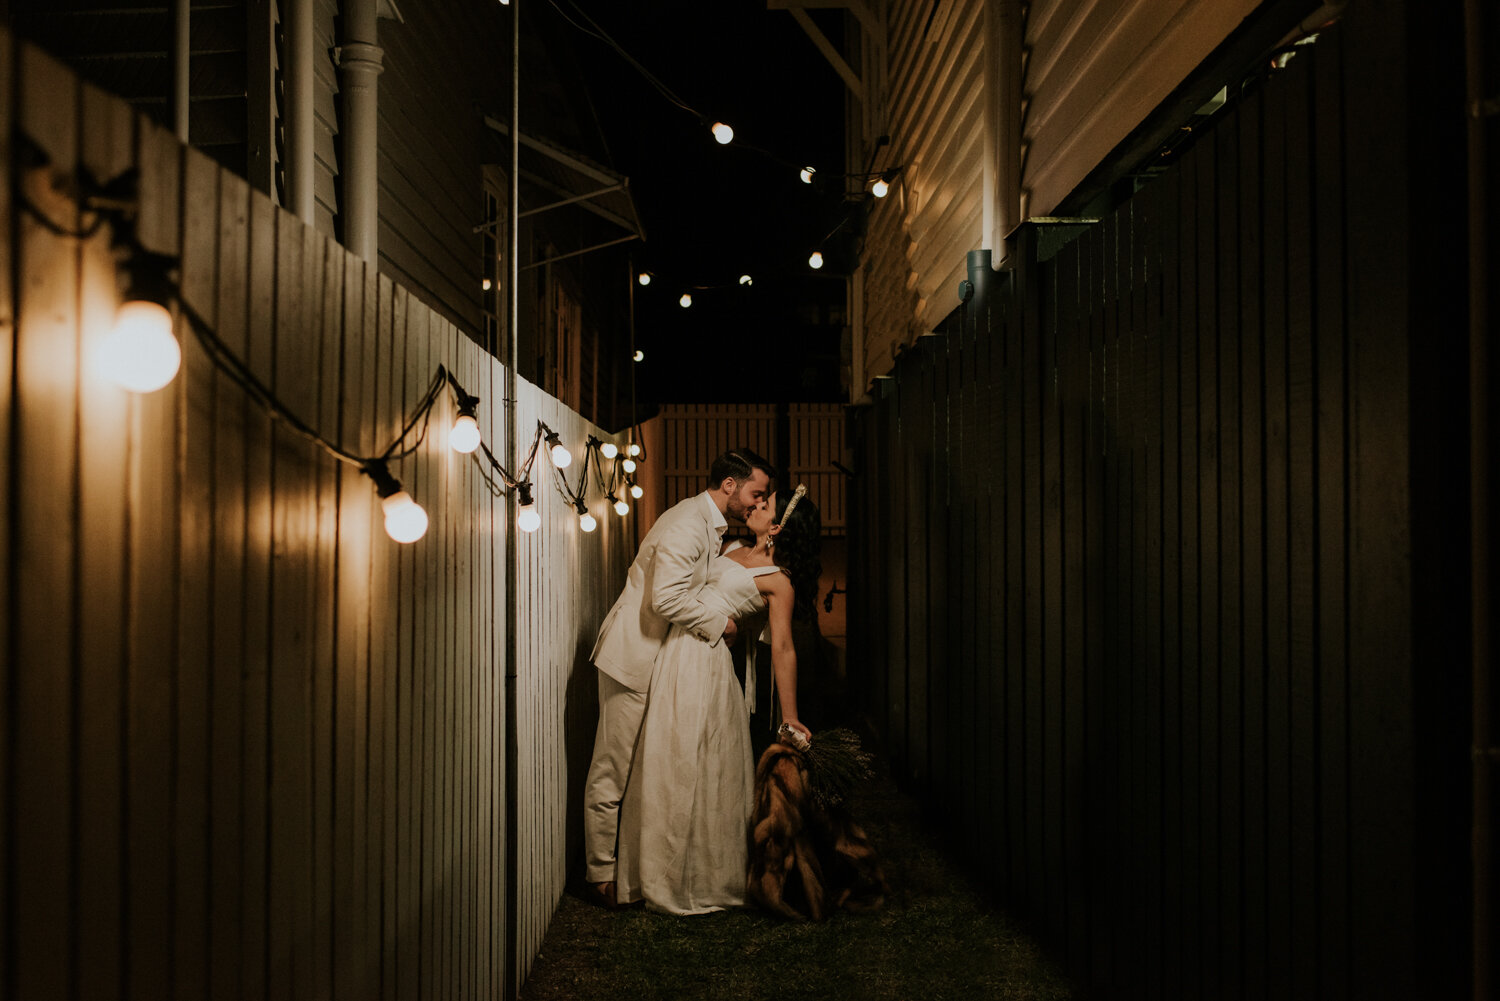 Brisbane Wedding Photographer | Engagement-Elopement Photography-115.jpg